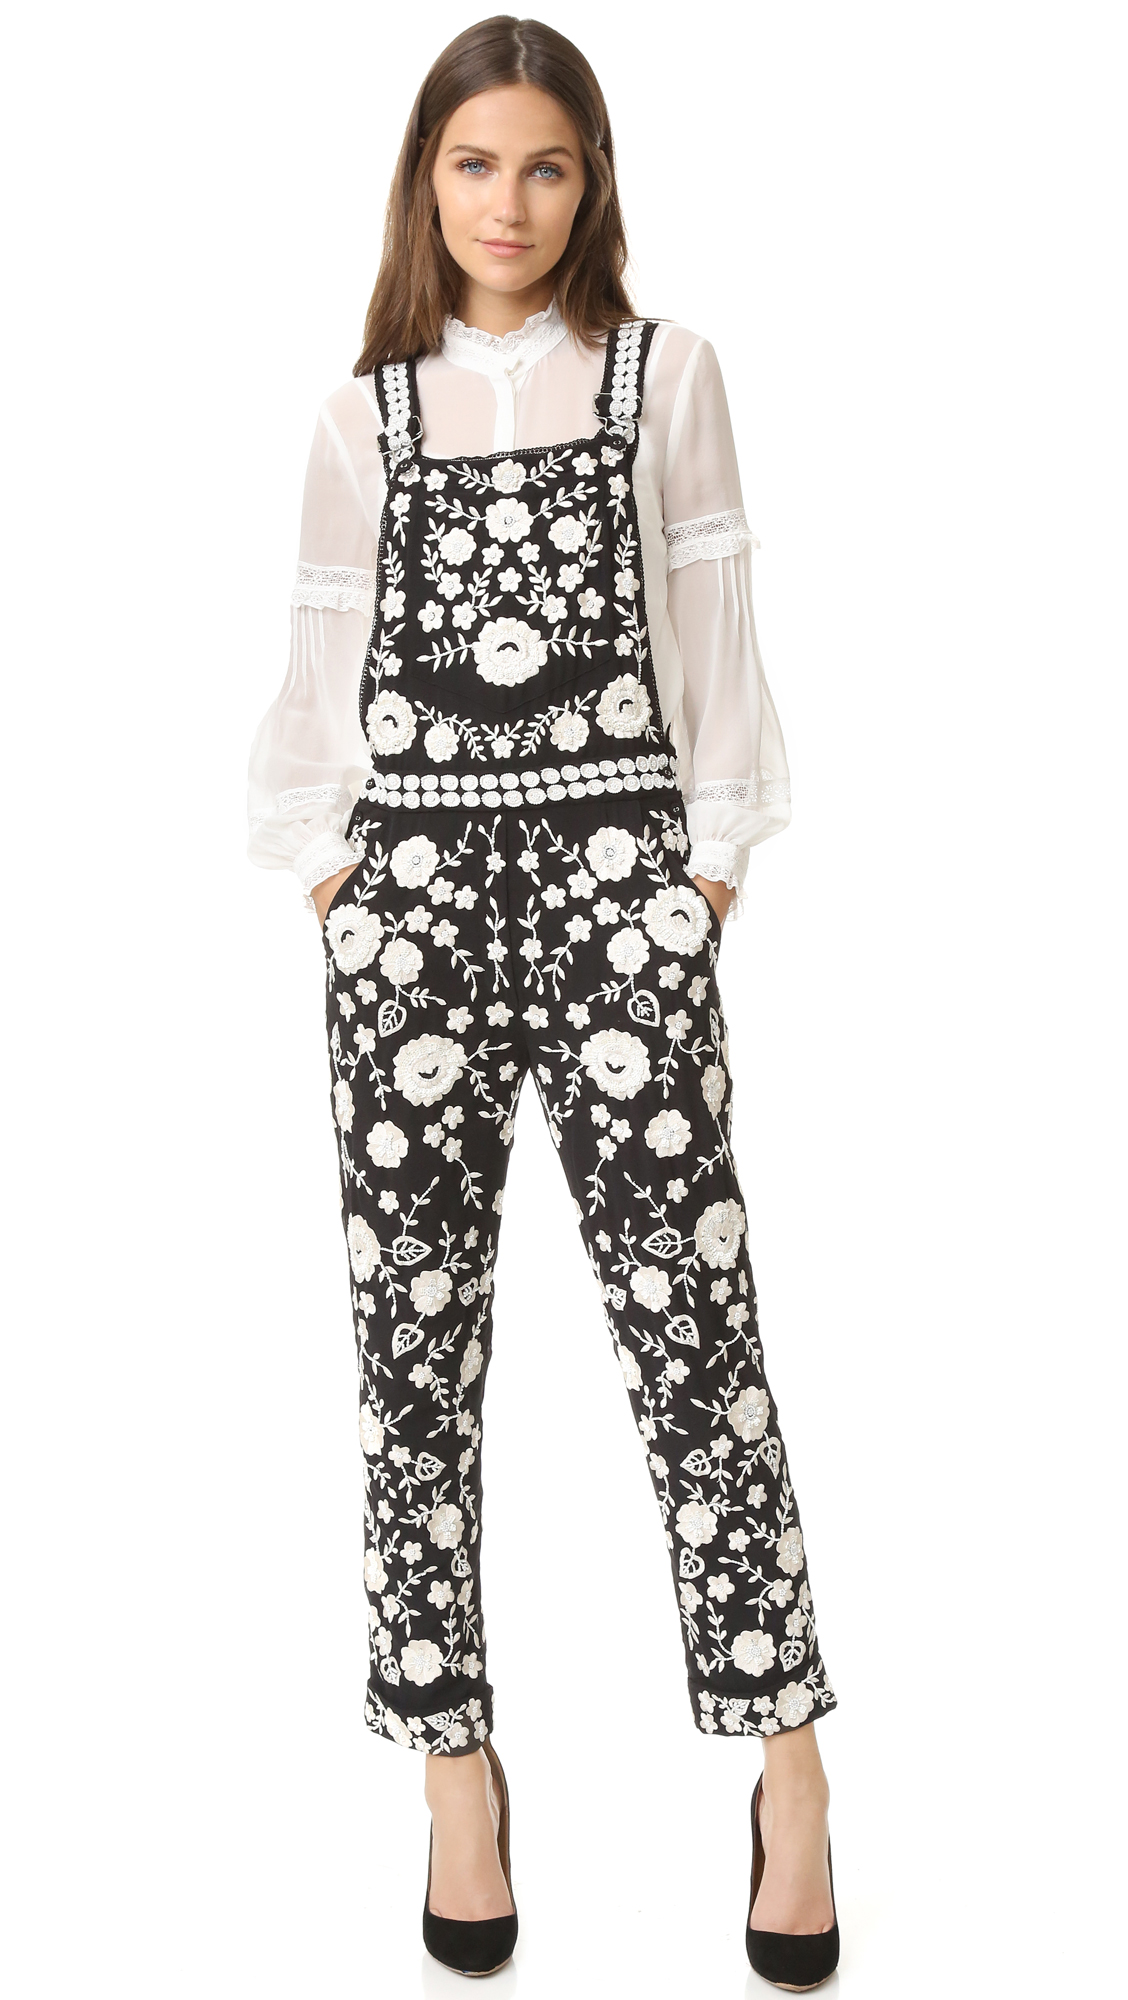 Statement making Needle & Thread overalls, covered with floral lace and detailed with intricate beading. Slant hip pockets, patch back pockets, and patch bib pocket. Adjustable shoulder straps. Fabric: Crepe. Shell: 100% polyester. Trim: 93% cotton/7% spandex. Dry clean.